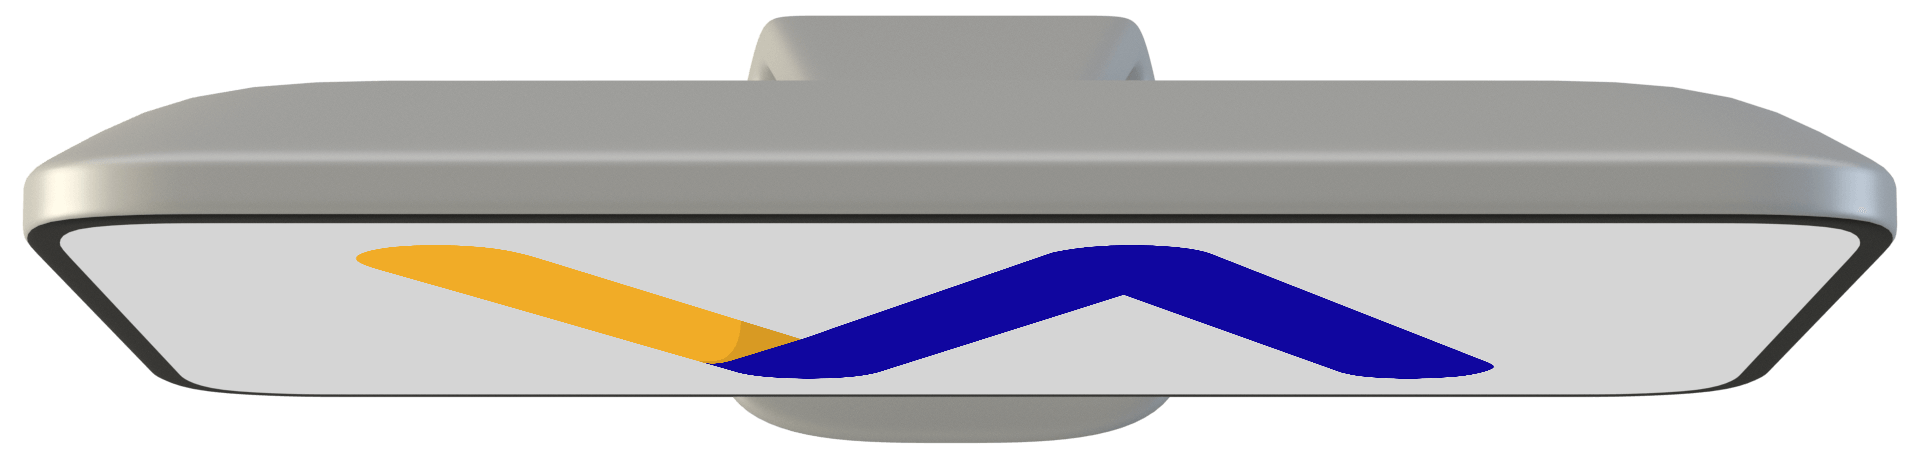 graphic of computer screen with virtalis logo